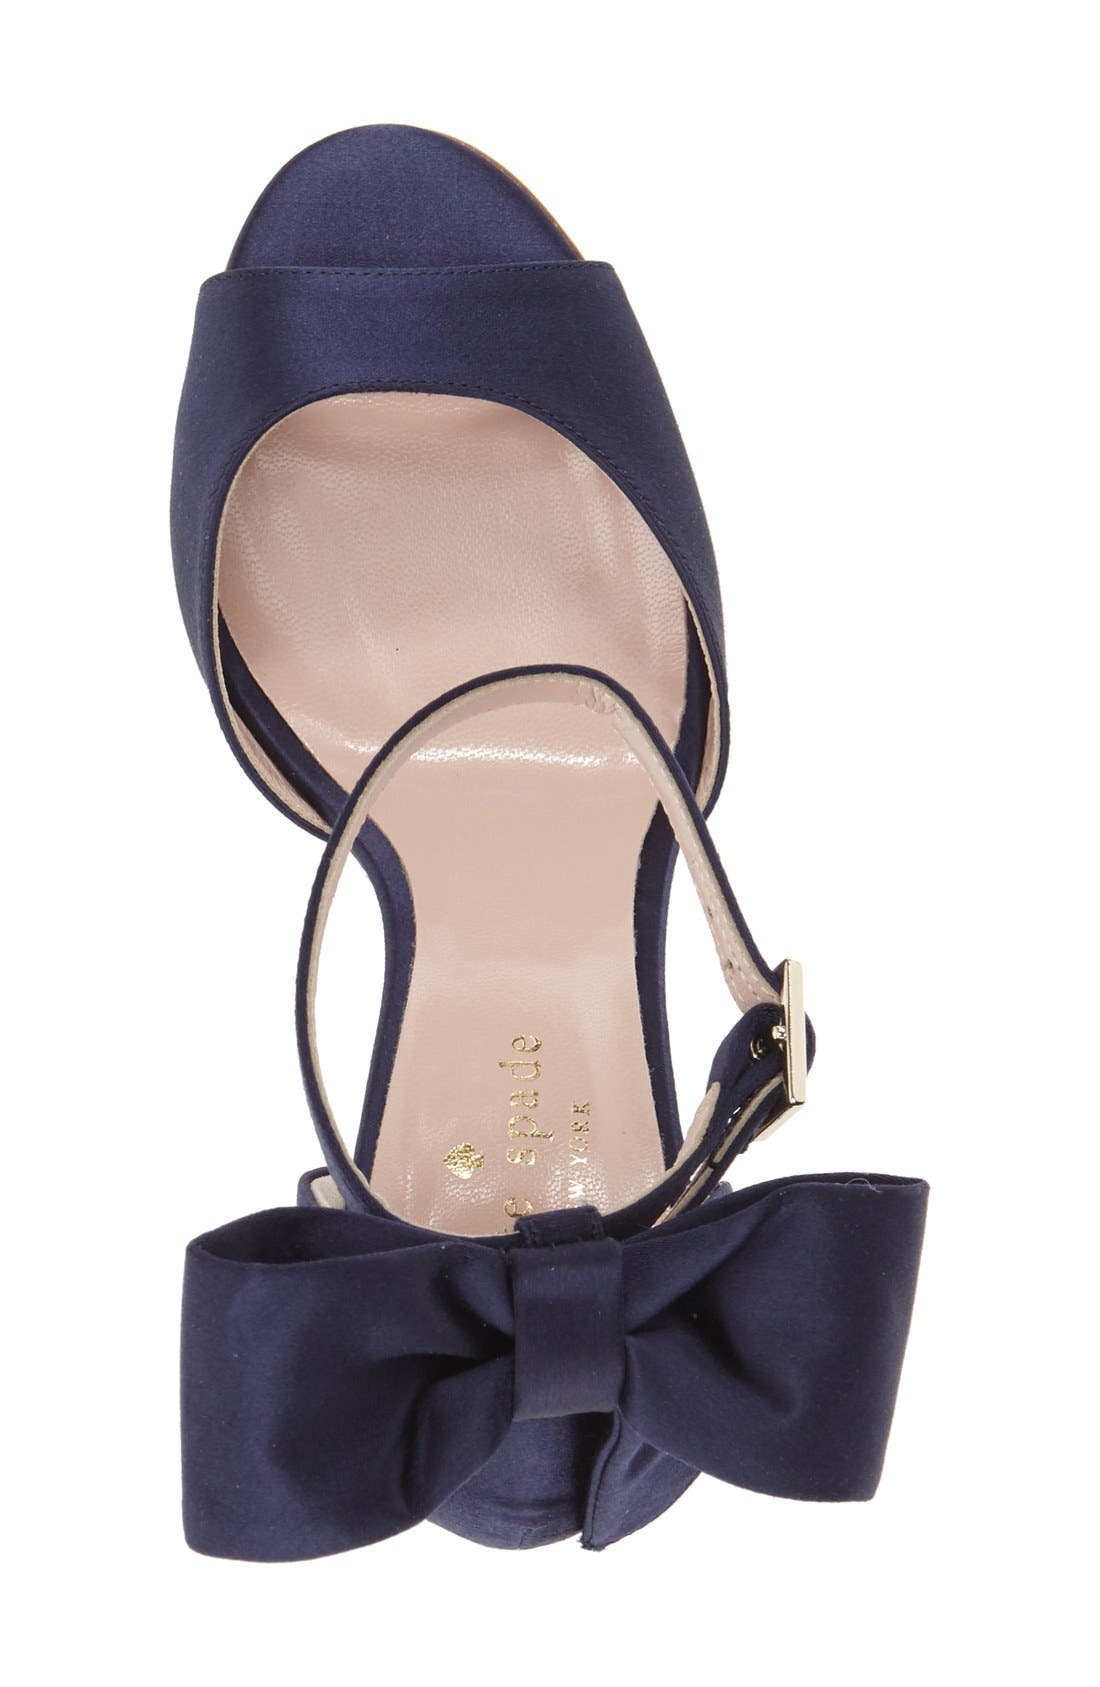 Alternate Image 3  - kate spade new york 'izzie' sandal (Women)